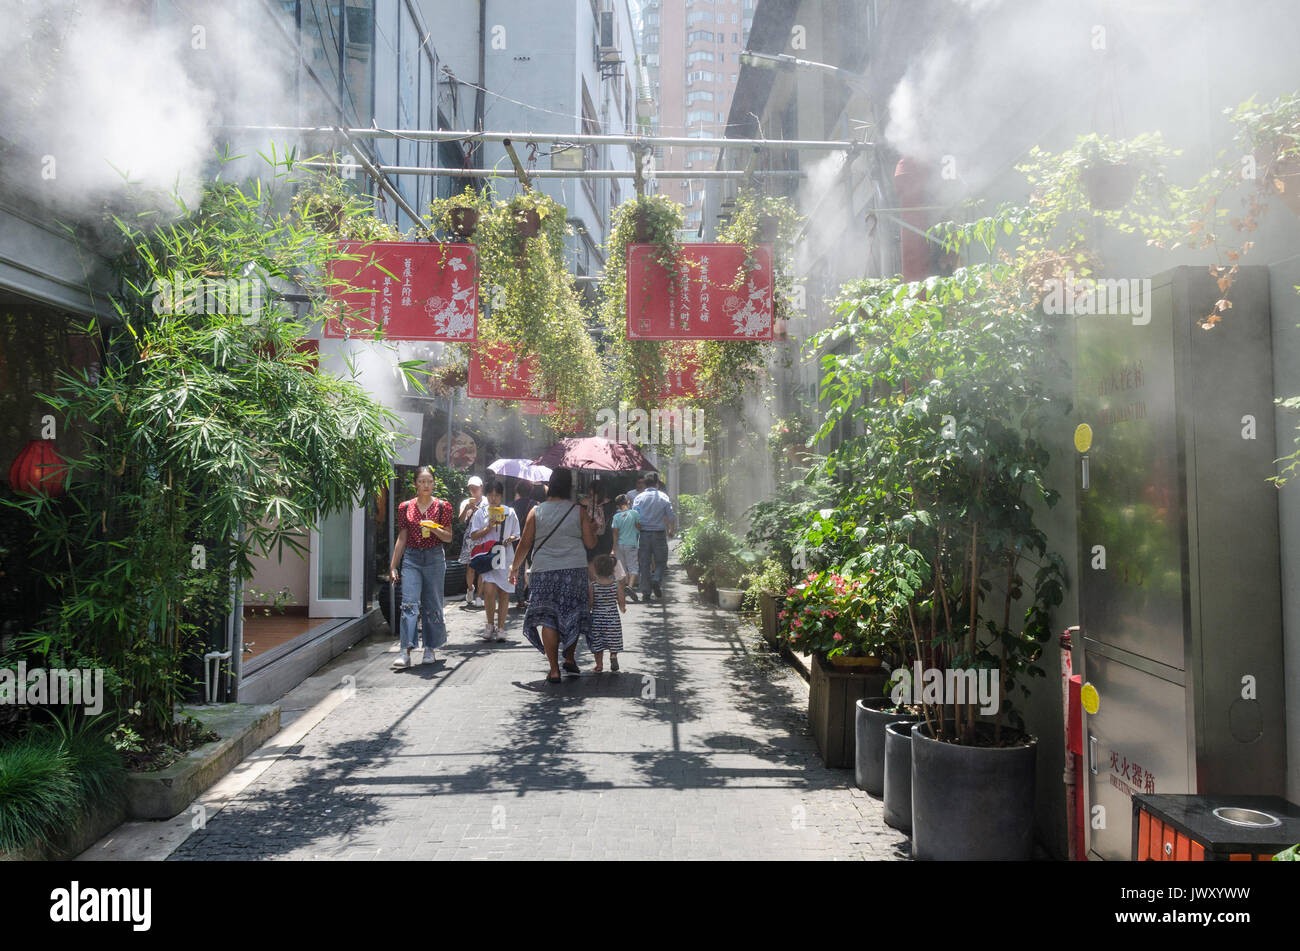 Tourists wander the streets of Tianzifang in Shanghai, China. A cooling system sprays a mist to bring relief from the hot sun. - Stock Image